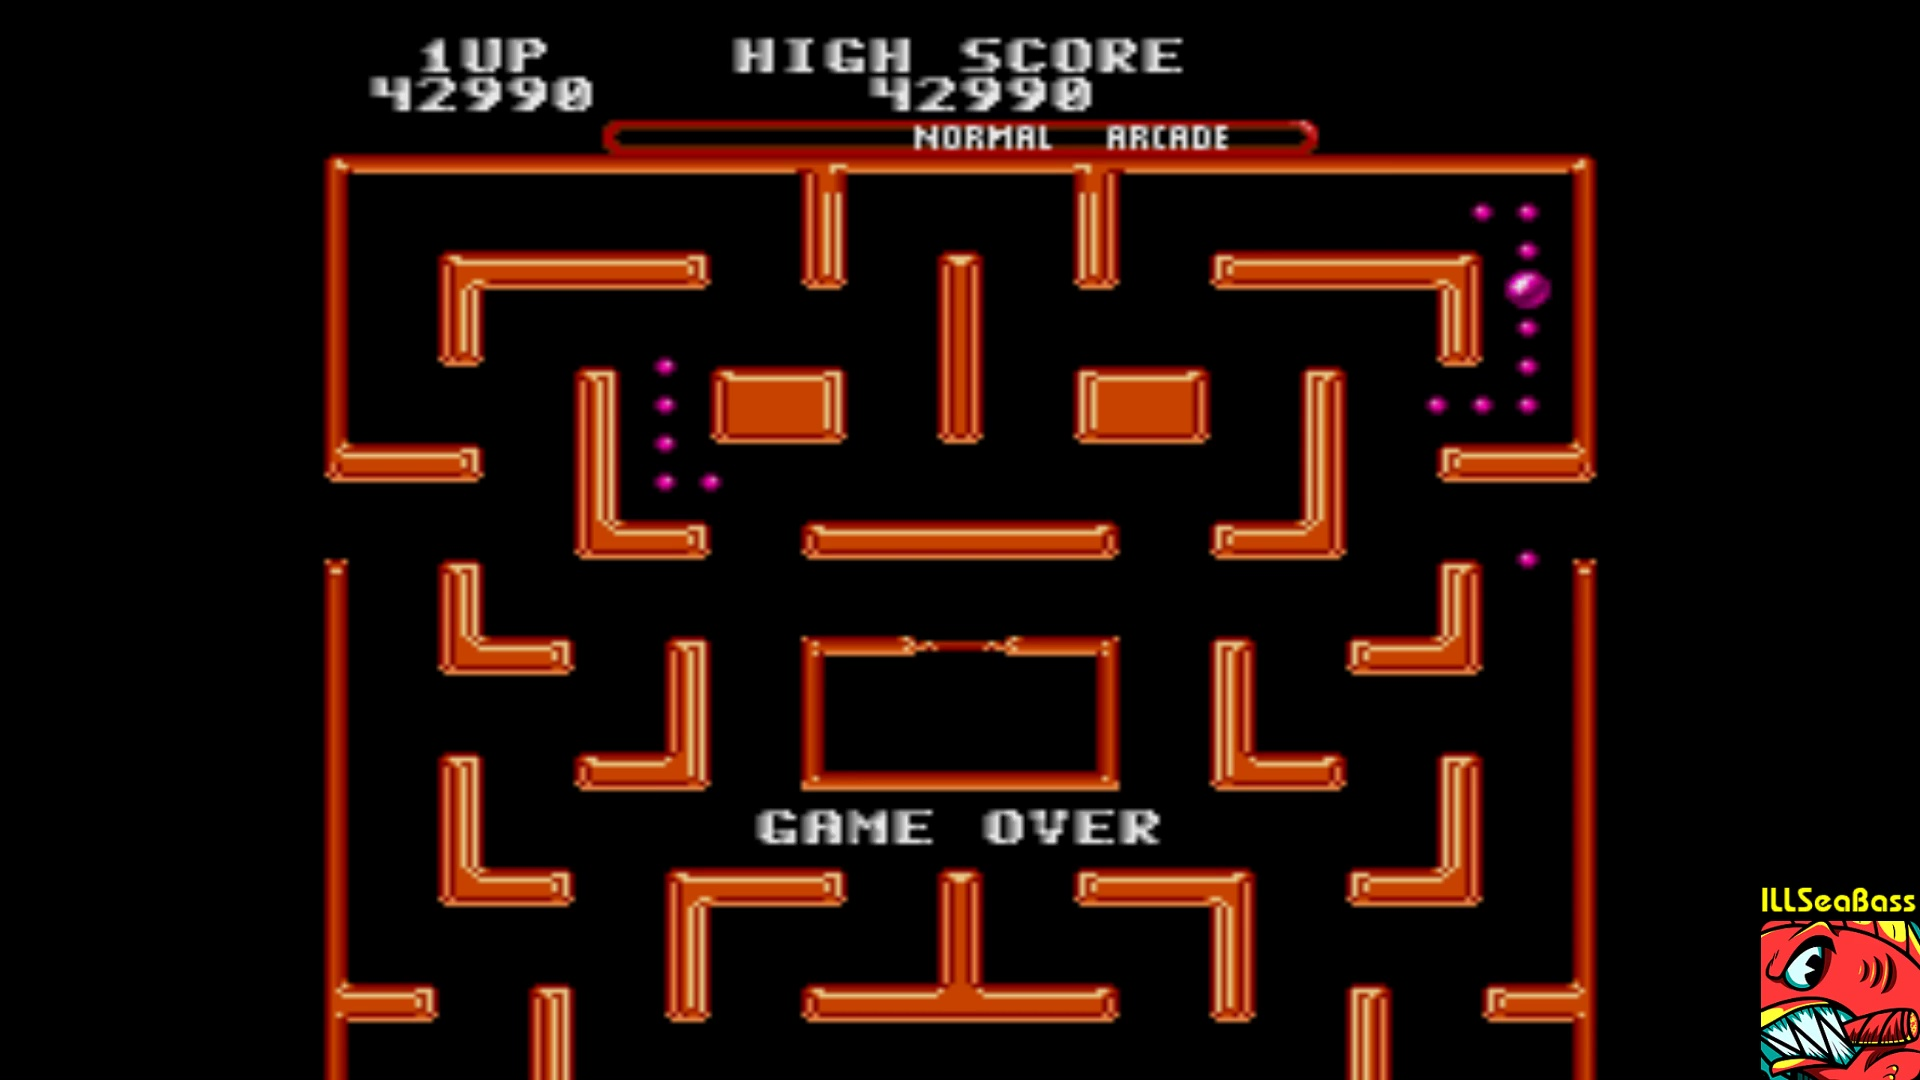 ILLSeaBass: Ms. Pac-Man (Sega Genesis / MegaDrive Emulated) 42,990 points on 2018-01-21 01:55:28